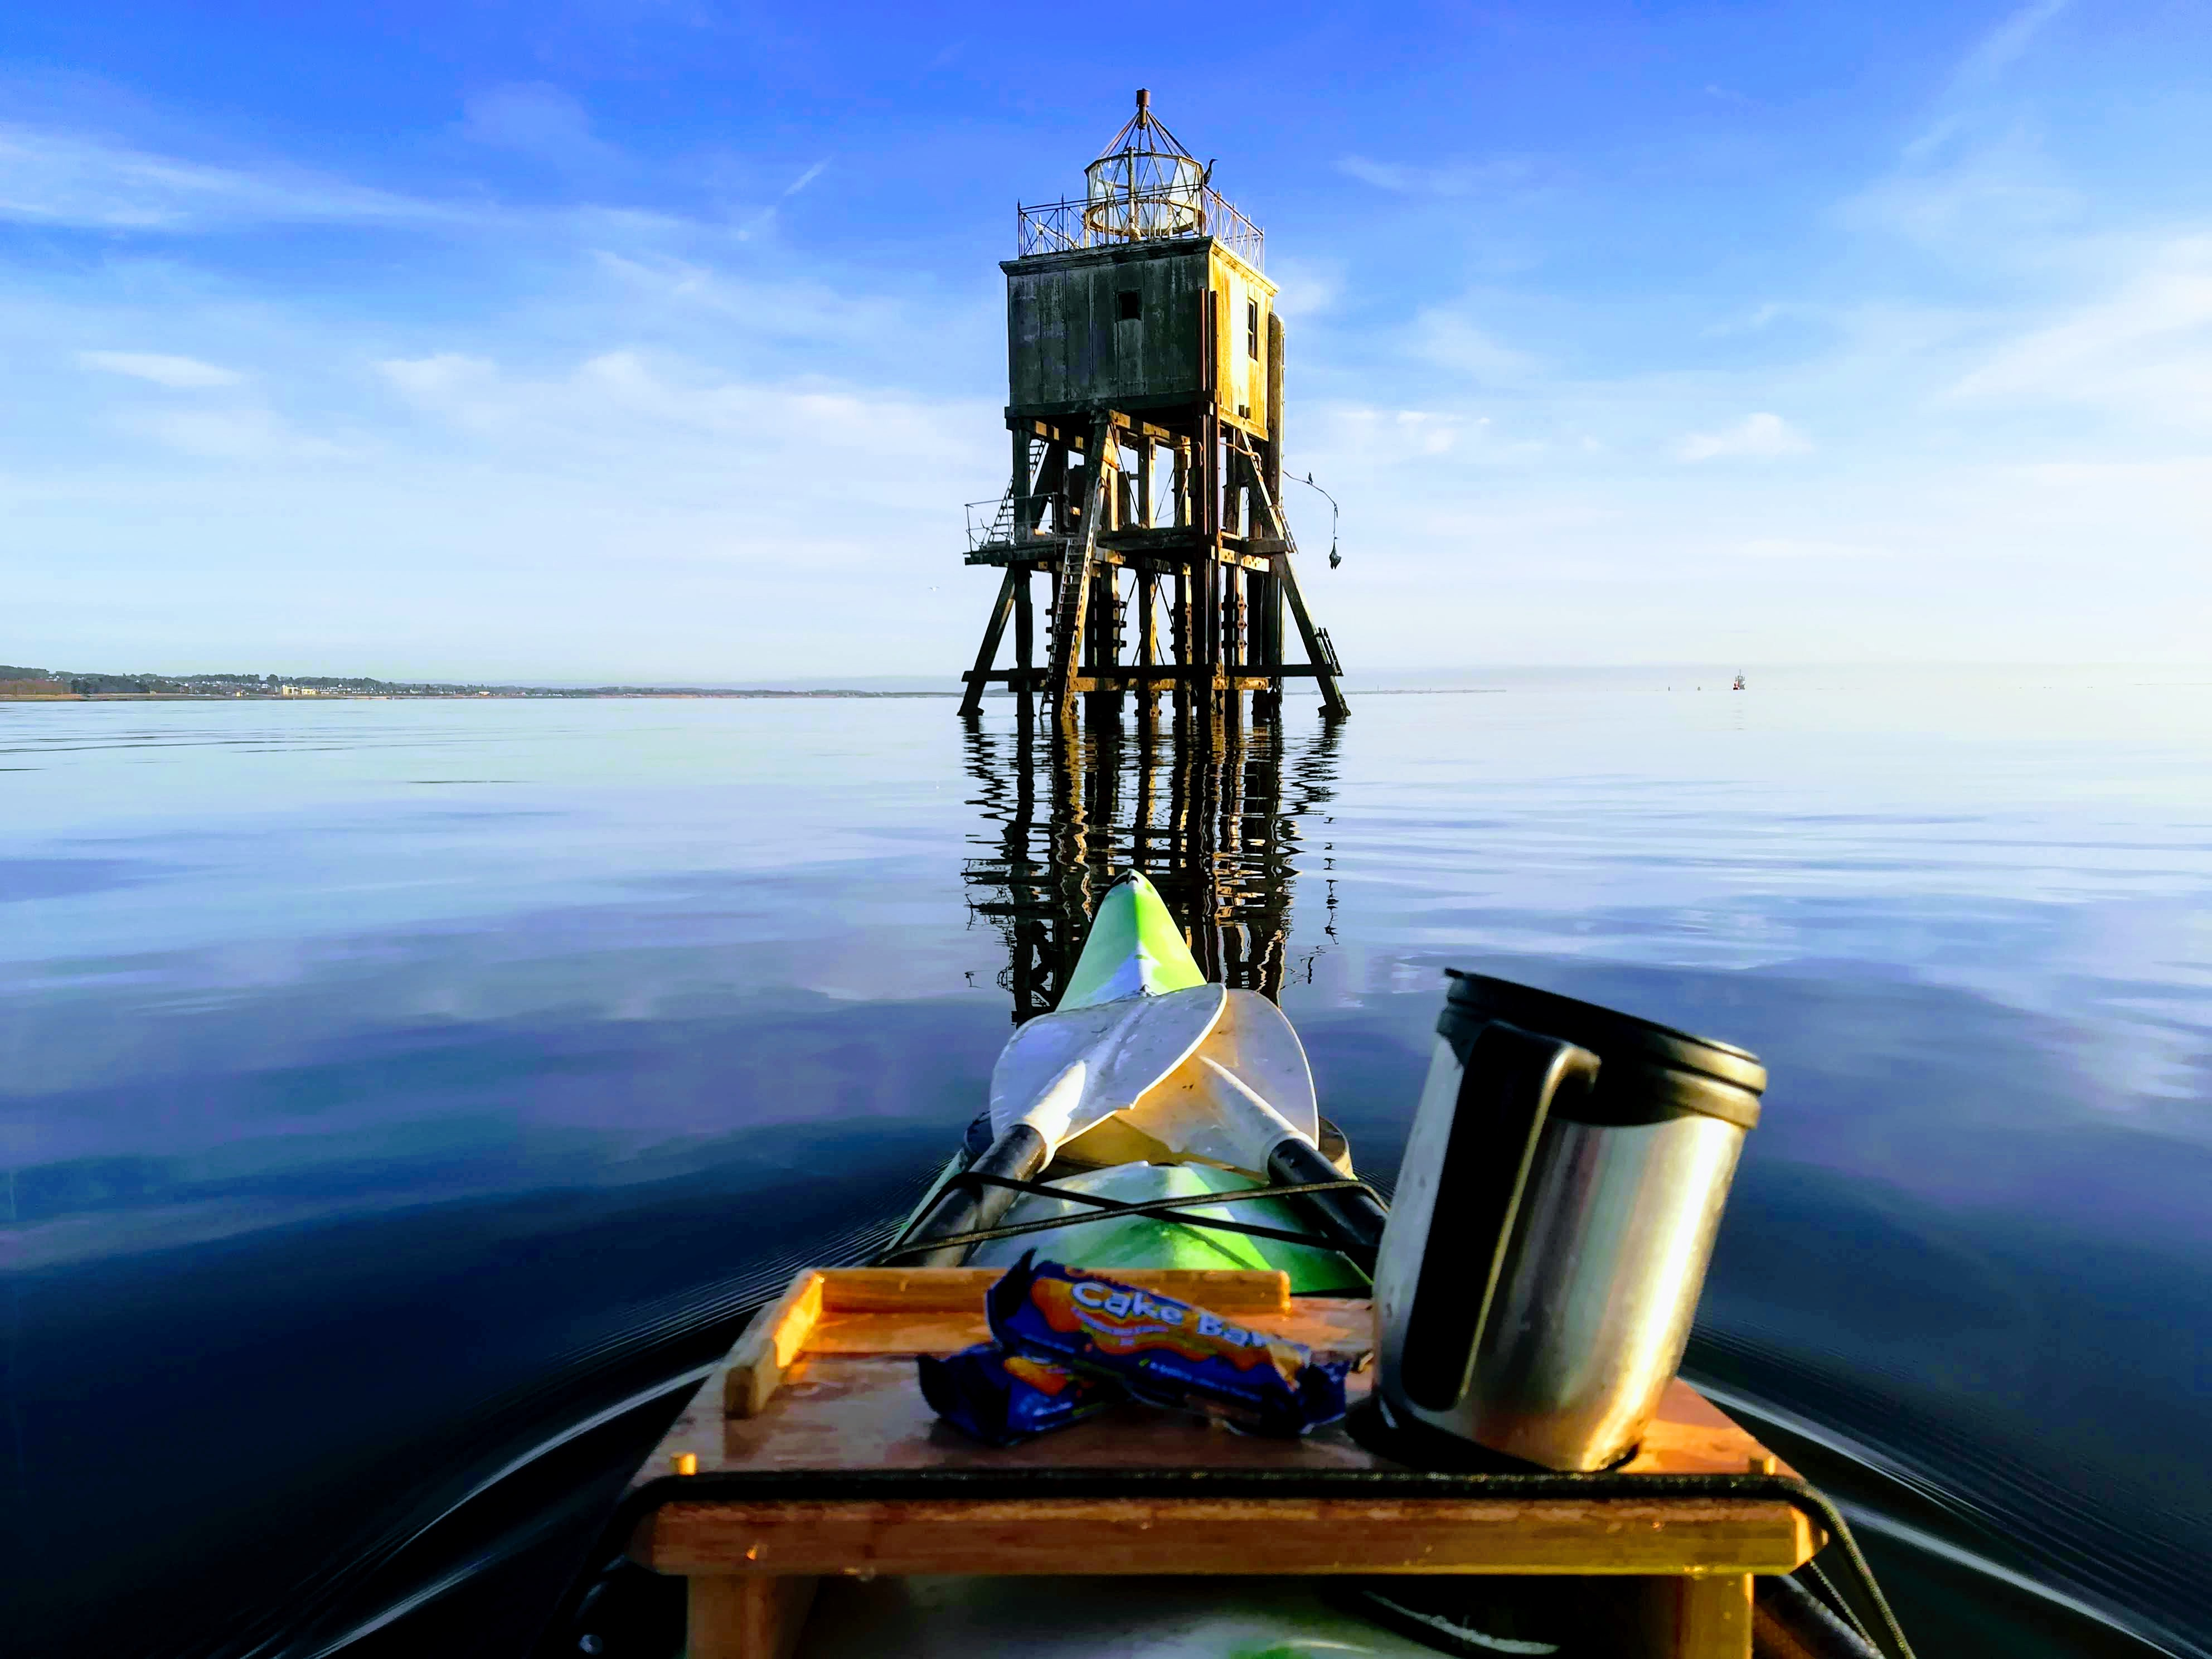 Morning coffee  and kayaking at Tayport - Outdoor Explore